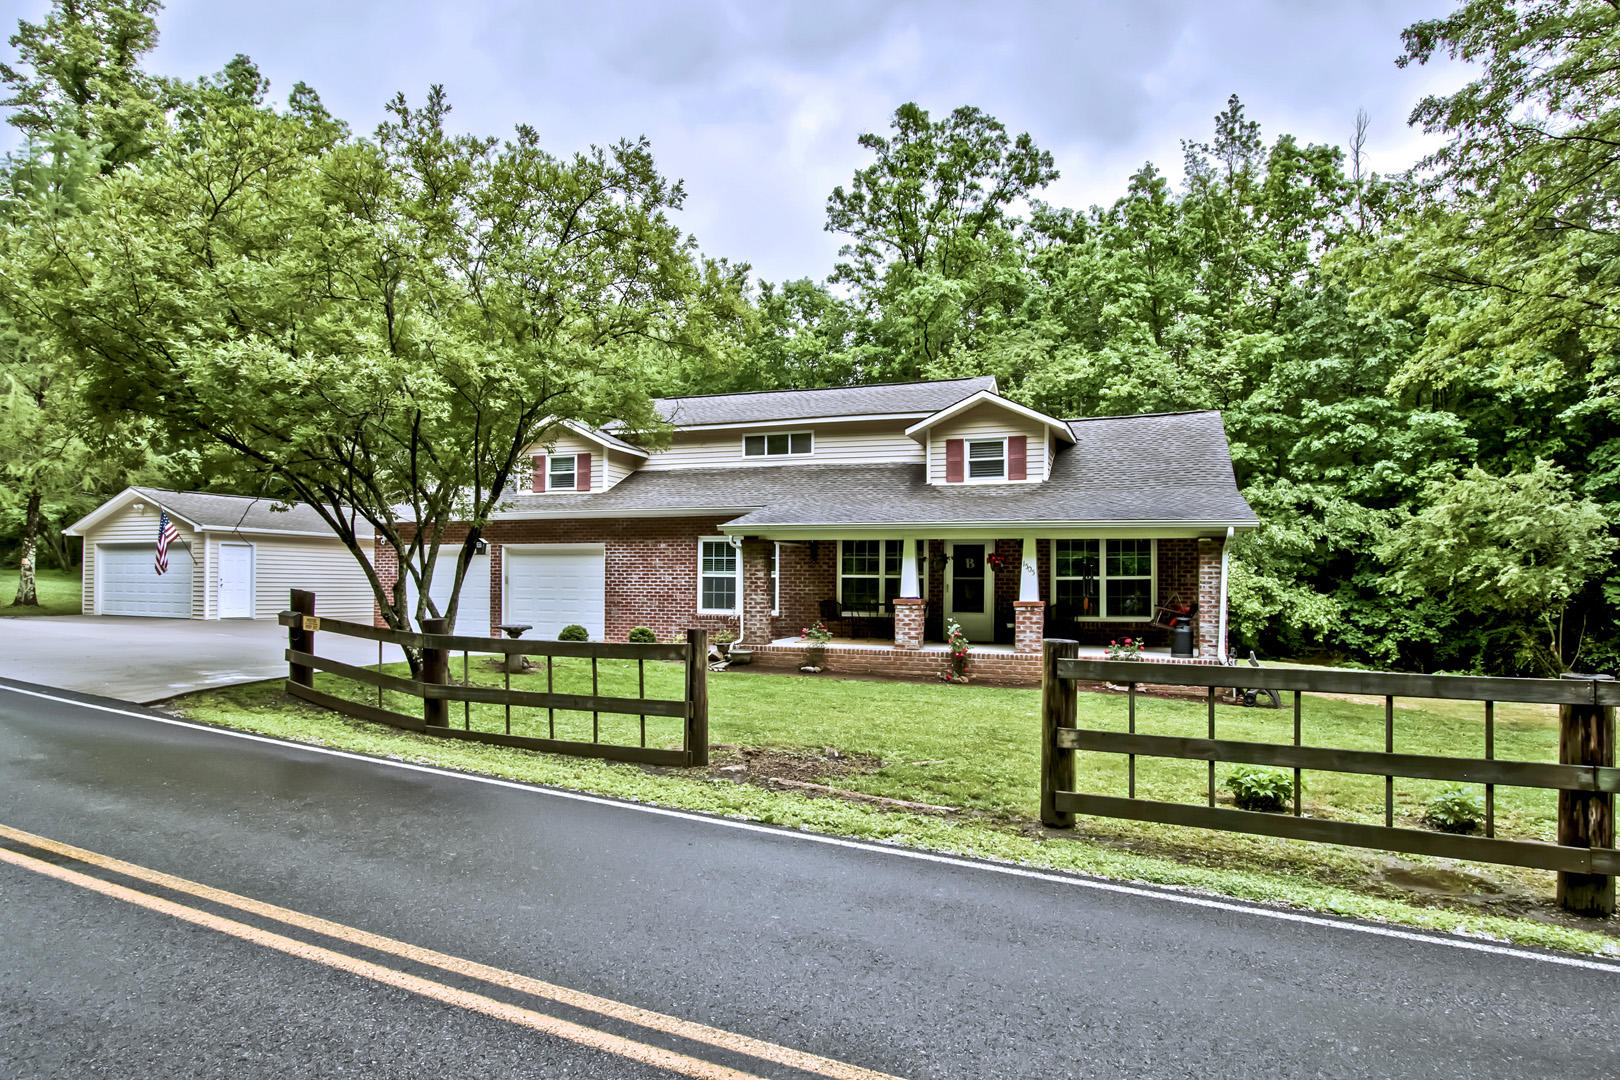 20190517173620781354000000-o Clinton anderson county homes for sale